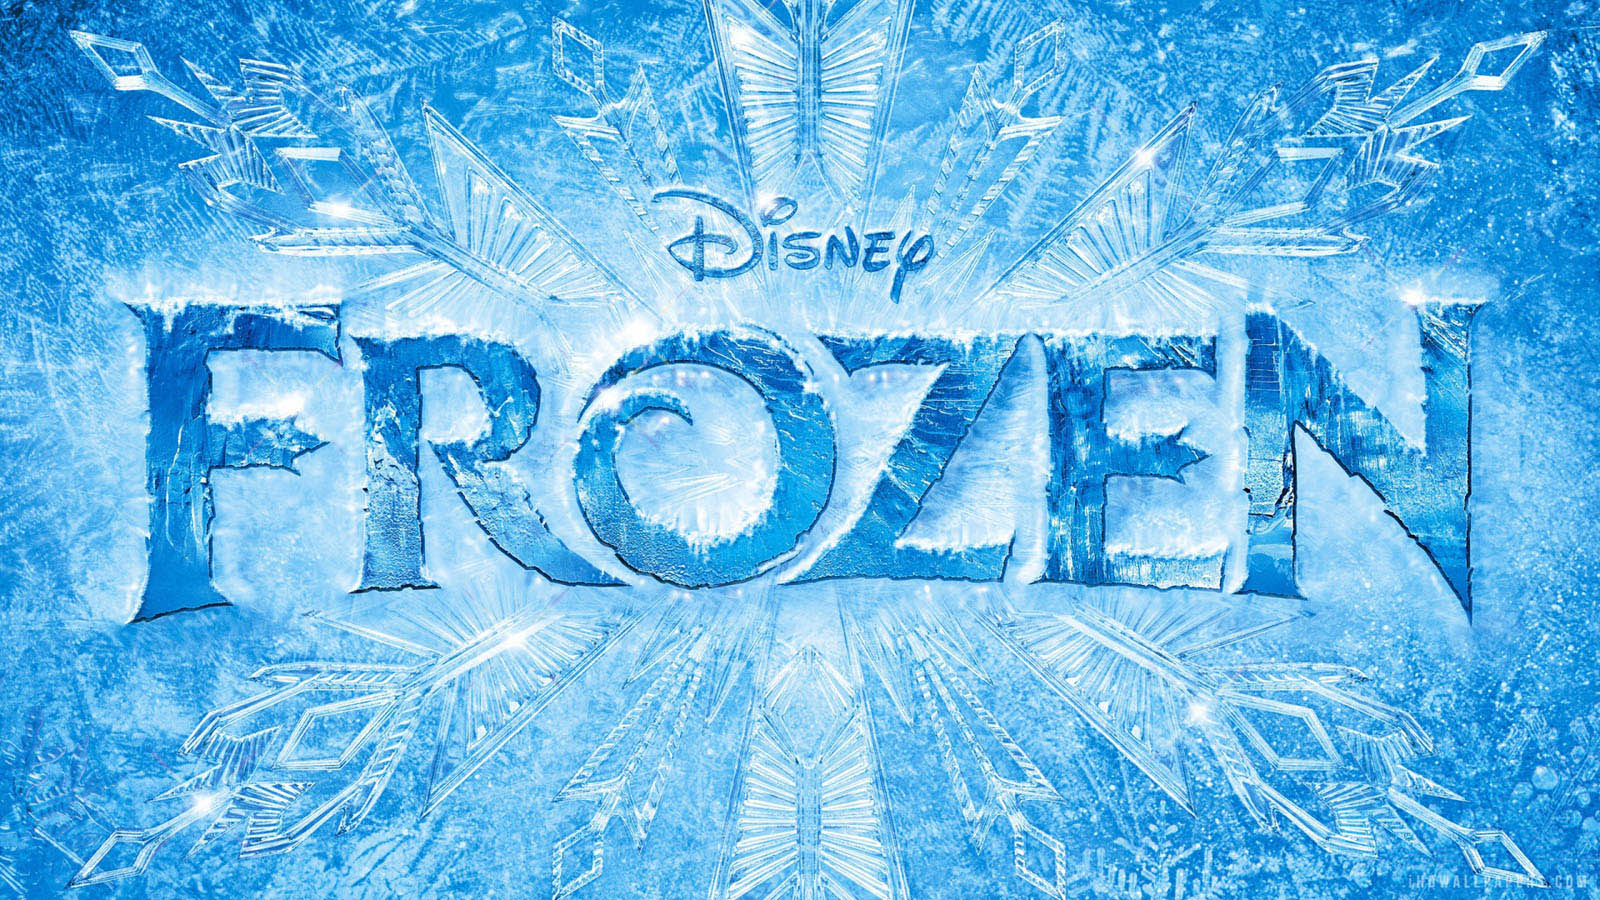 Disney Frozen 25 Character Designs Wallpapers And